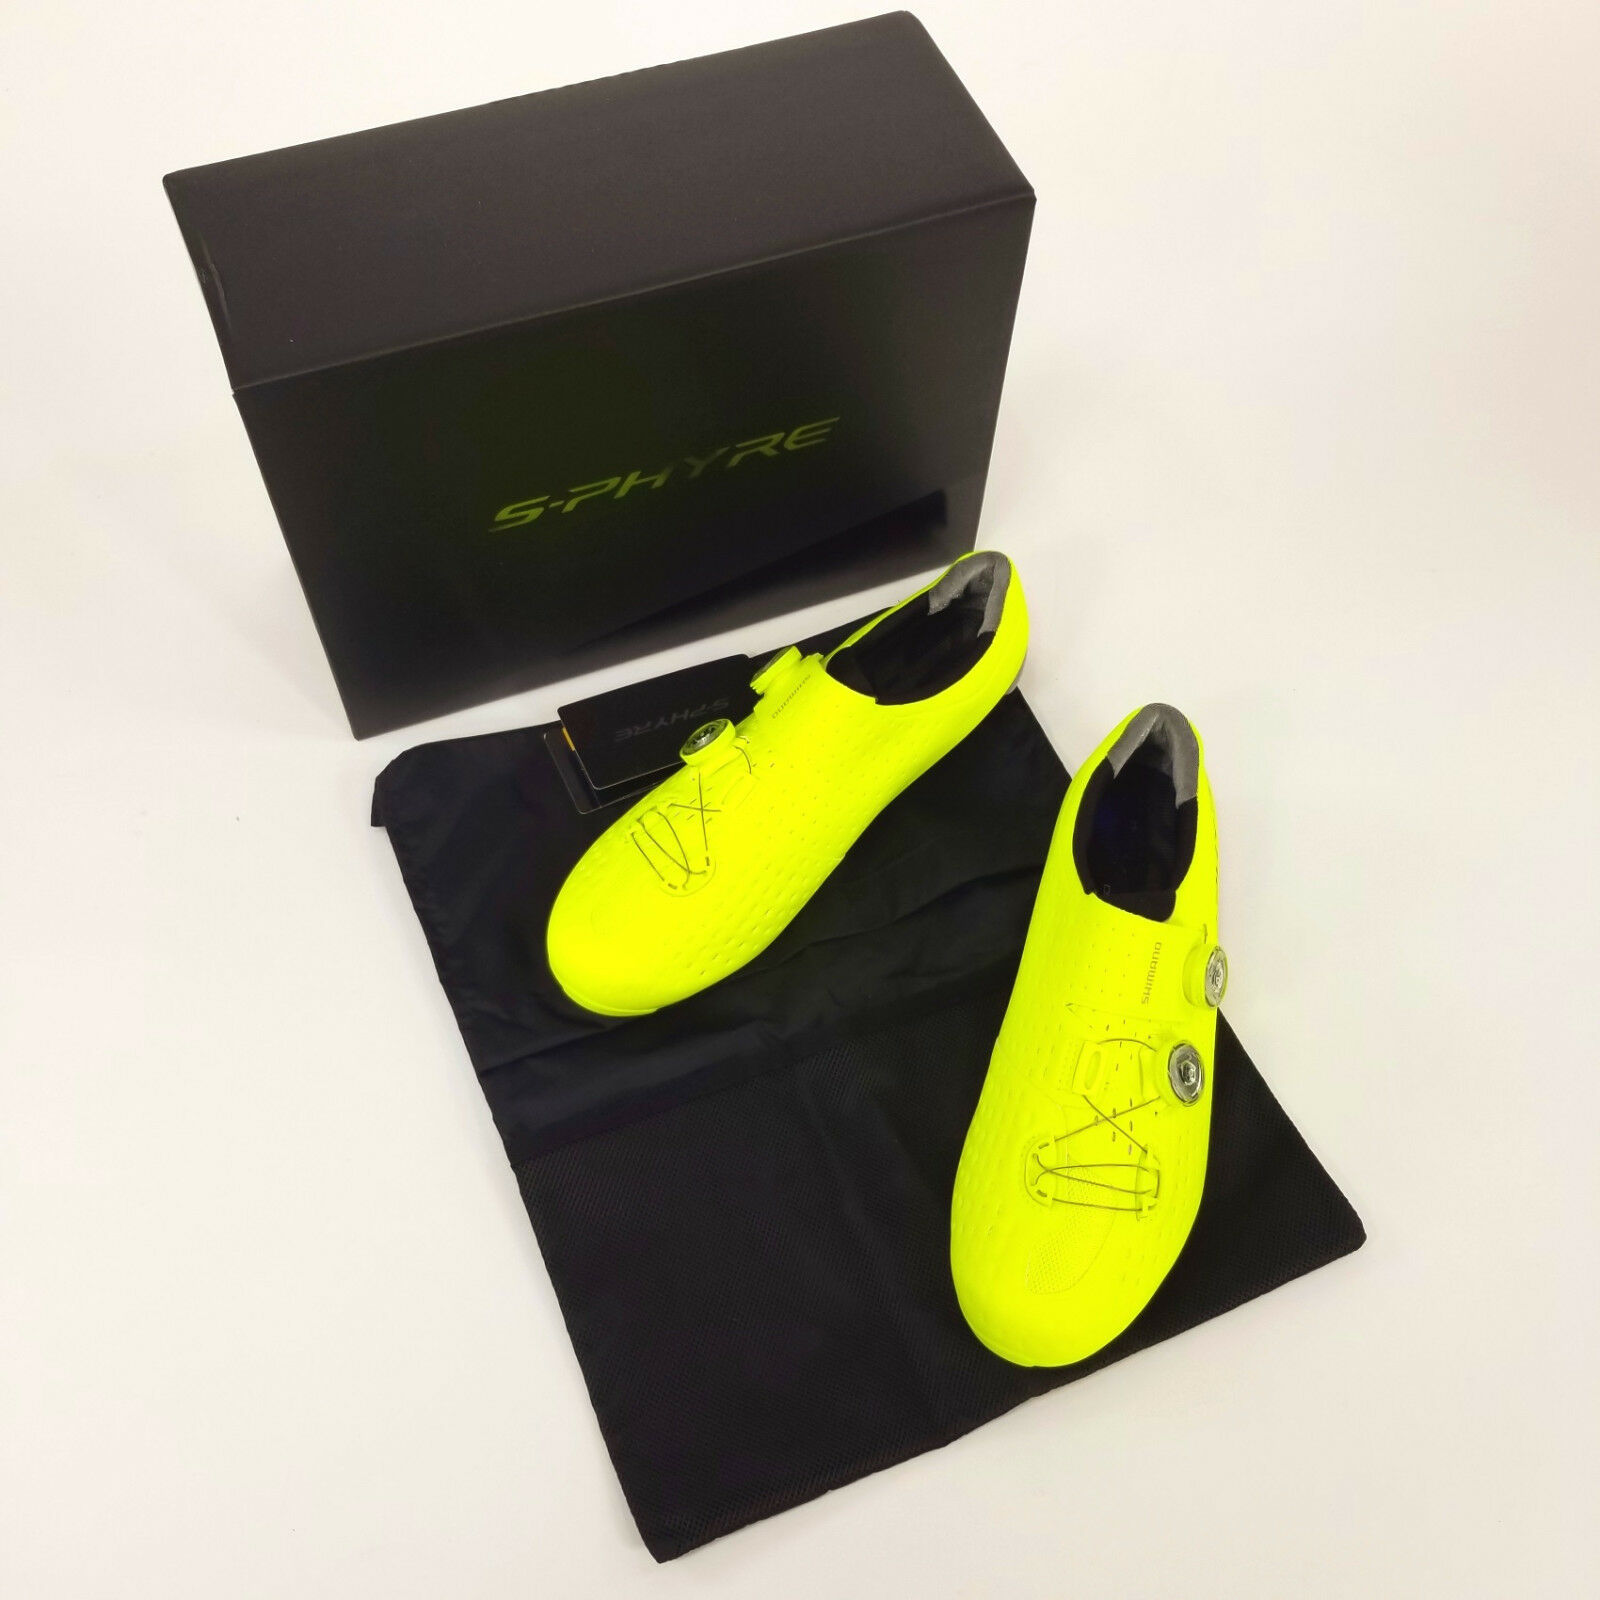 Shimano RC9Y S-Phyre Road Bike shoes, Yellow, US 10.5